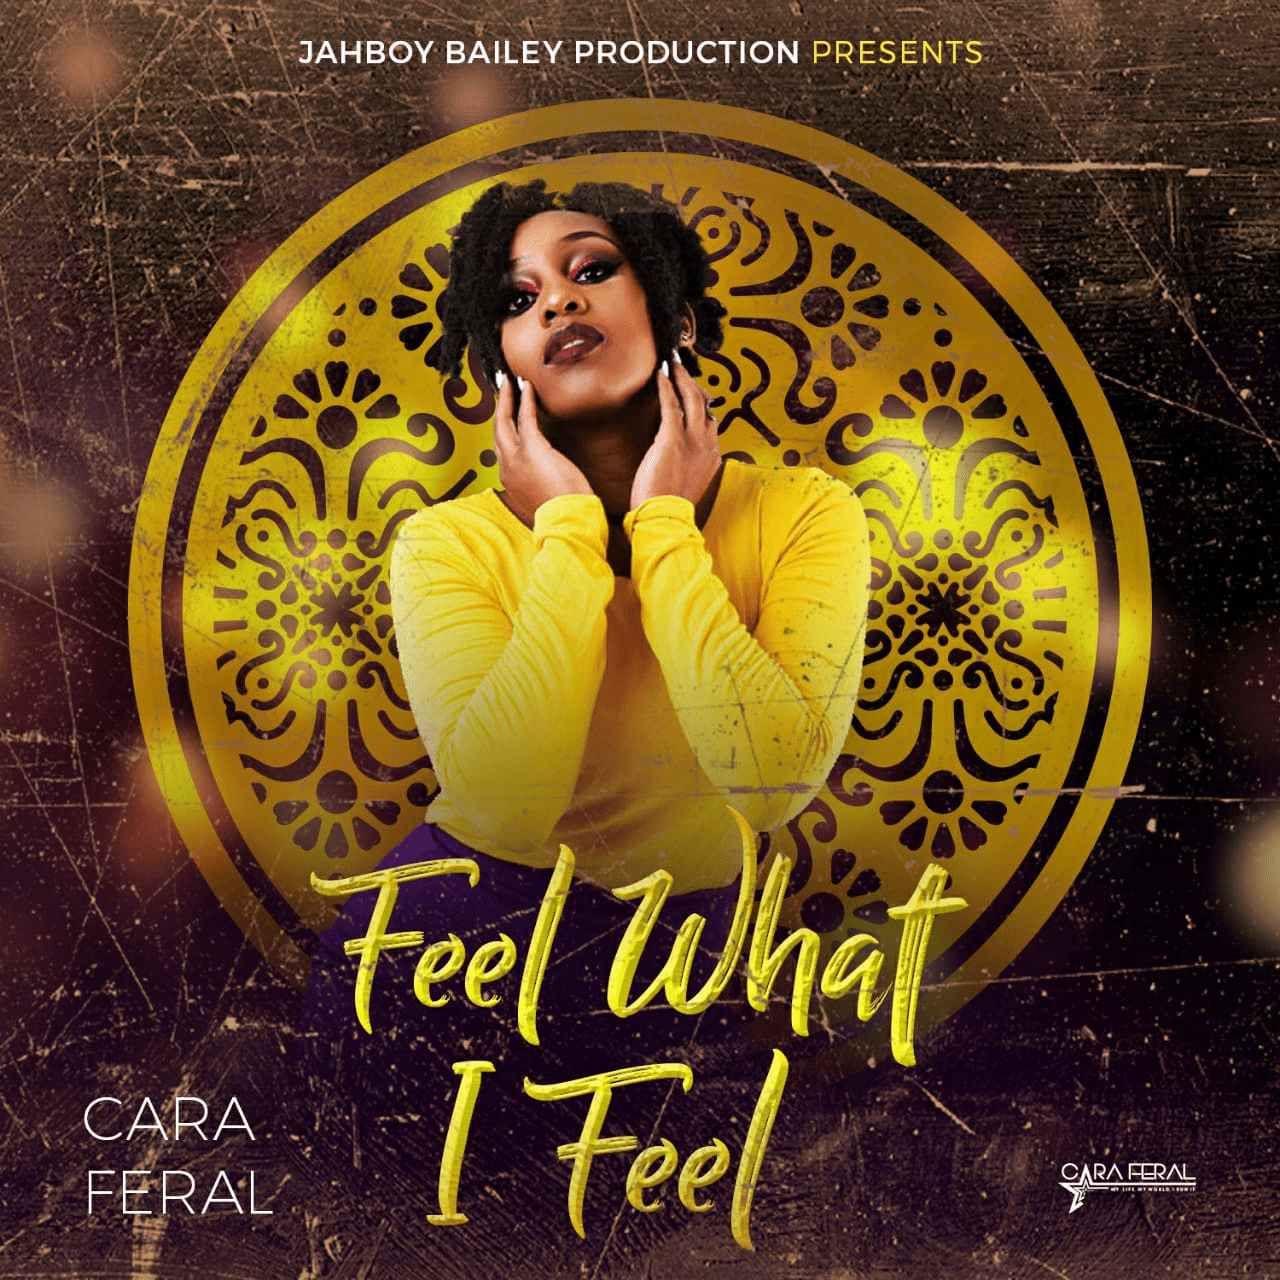 Cara Feral - Feel What I Feel - Jahboy Bailey Production